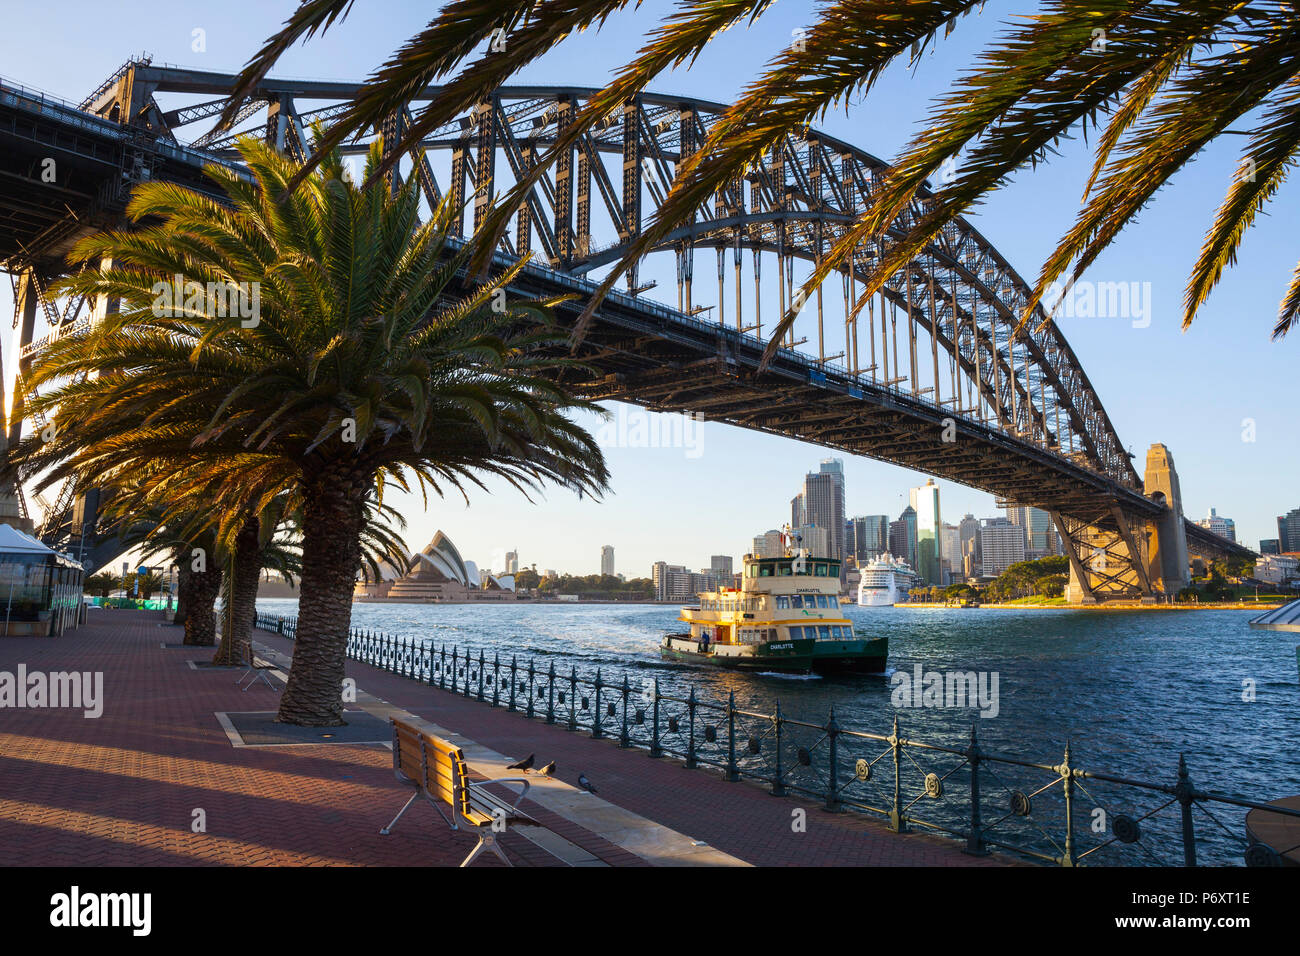 Harbour Bridge, il Darling Harbour, Sydney, Nuovo Galles del Sud, Australia Immagini Stock